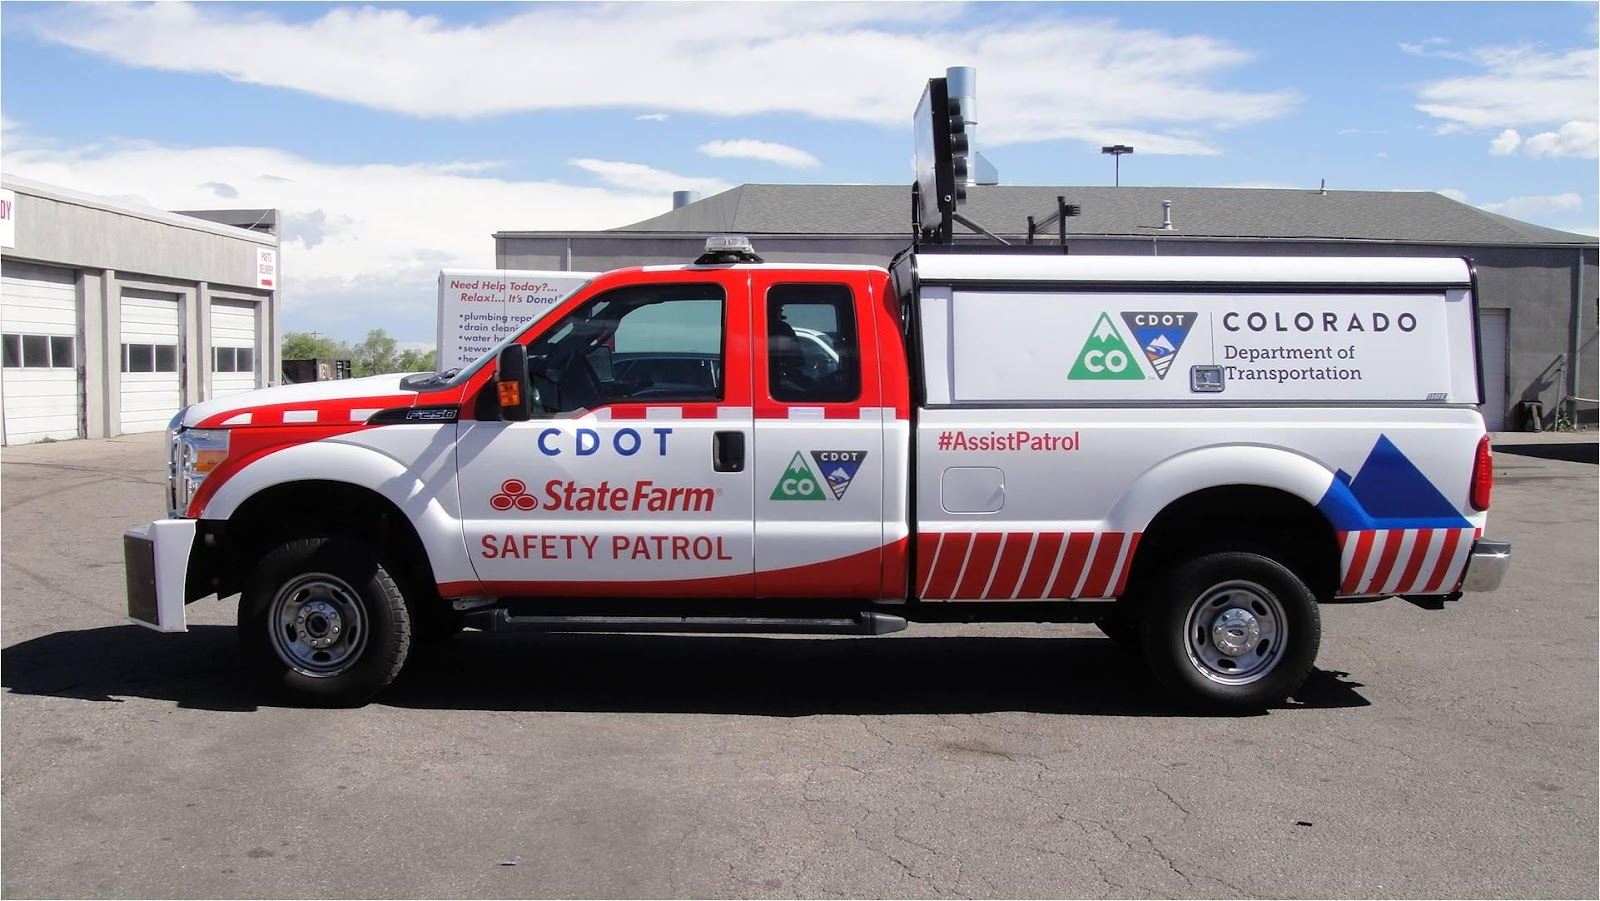 ... which expanded to Colorado Springs in 2016, patrols I-25 between North Academy Blvd and South Academy Blvd, to provide assistance to passenger vehicles.